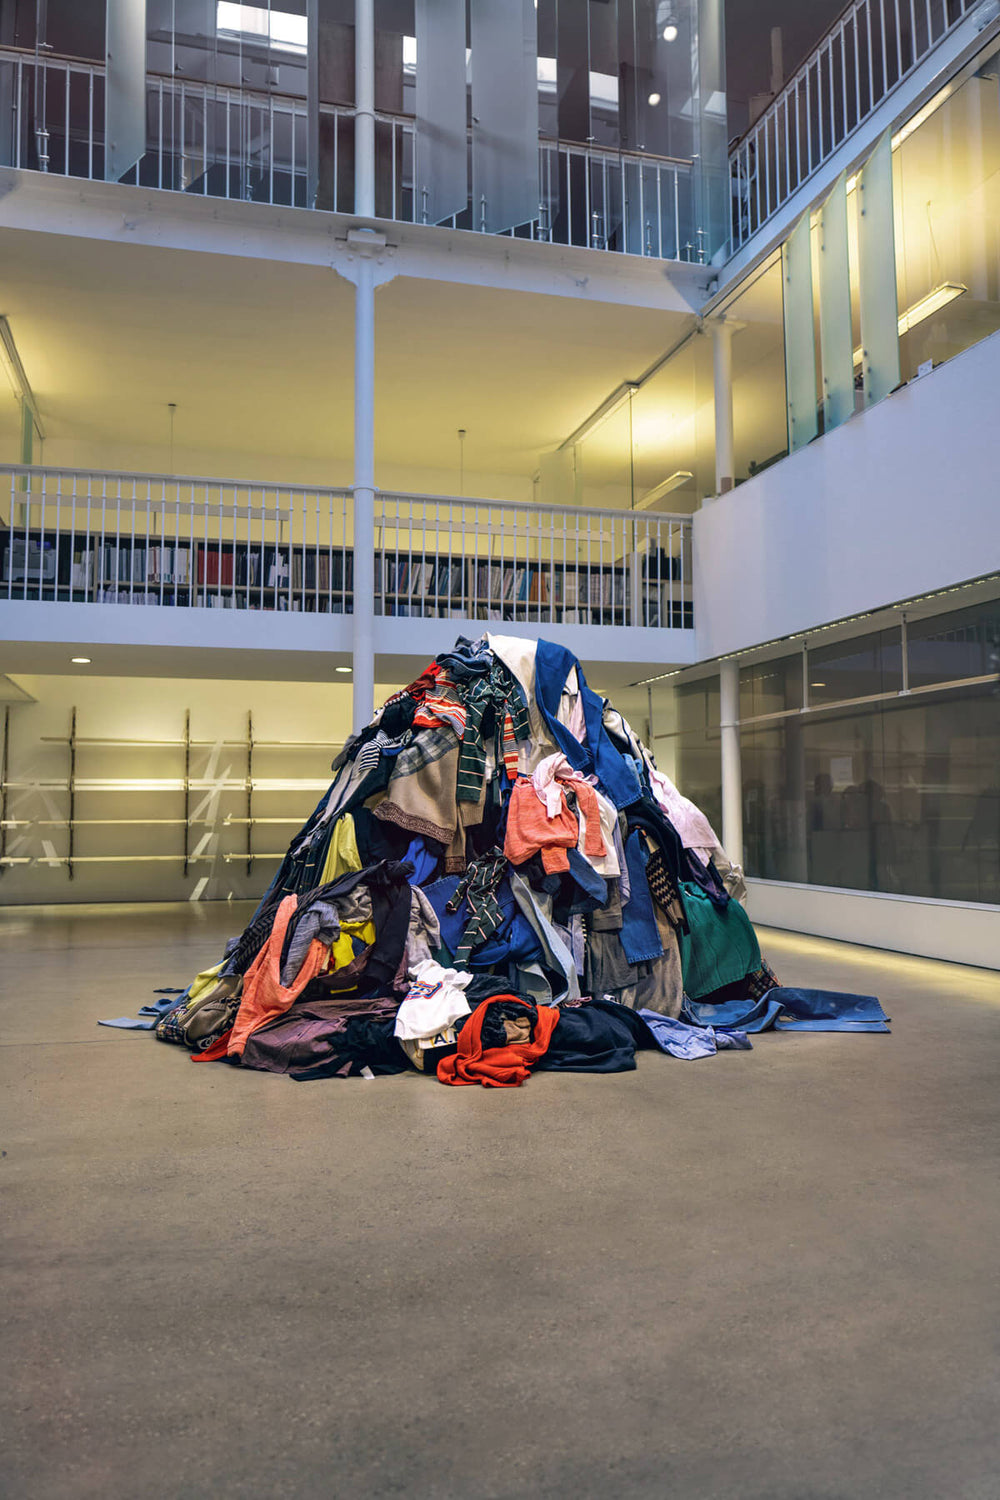 a photo featuring a pile of recycled clothes